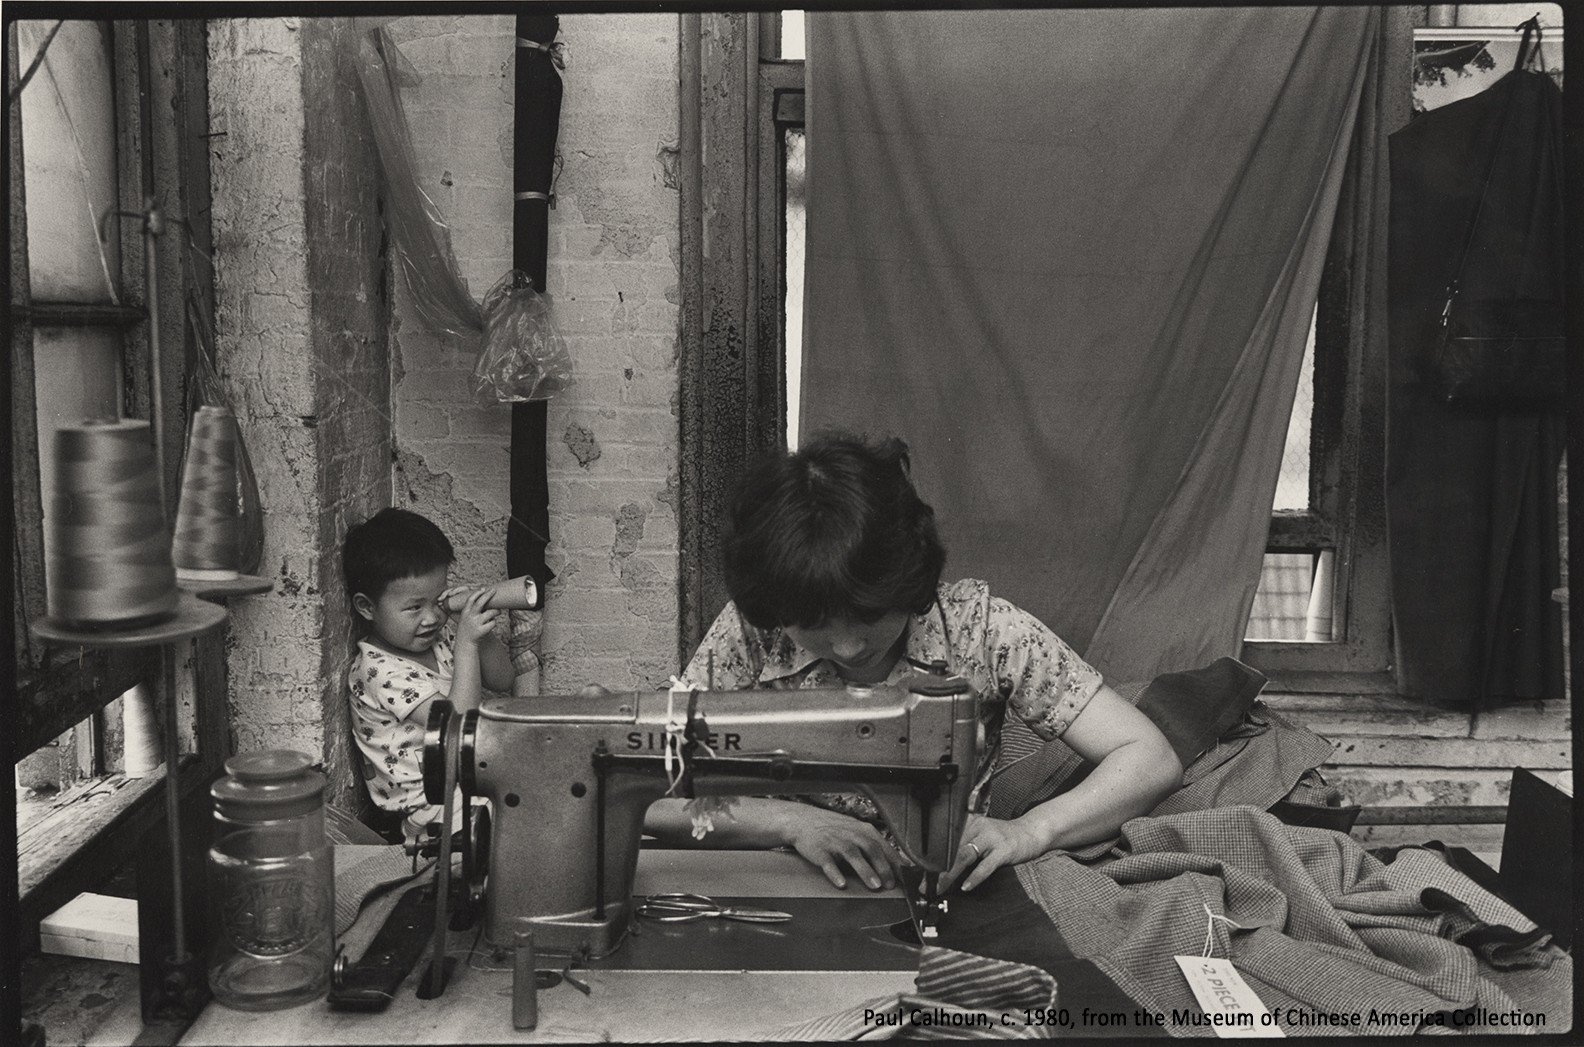 Black and white photo of a seamstress working at a sewing machine station while a young child plays in the background